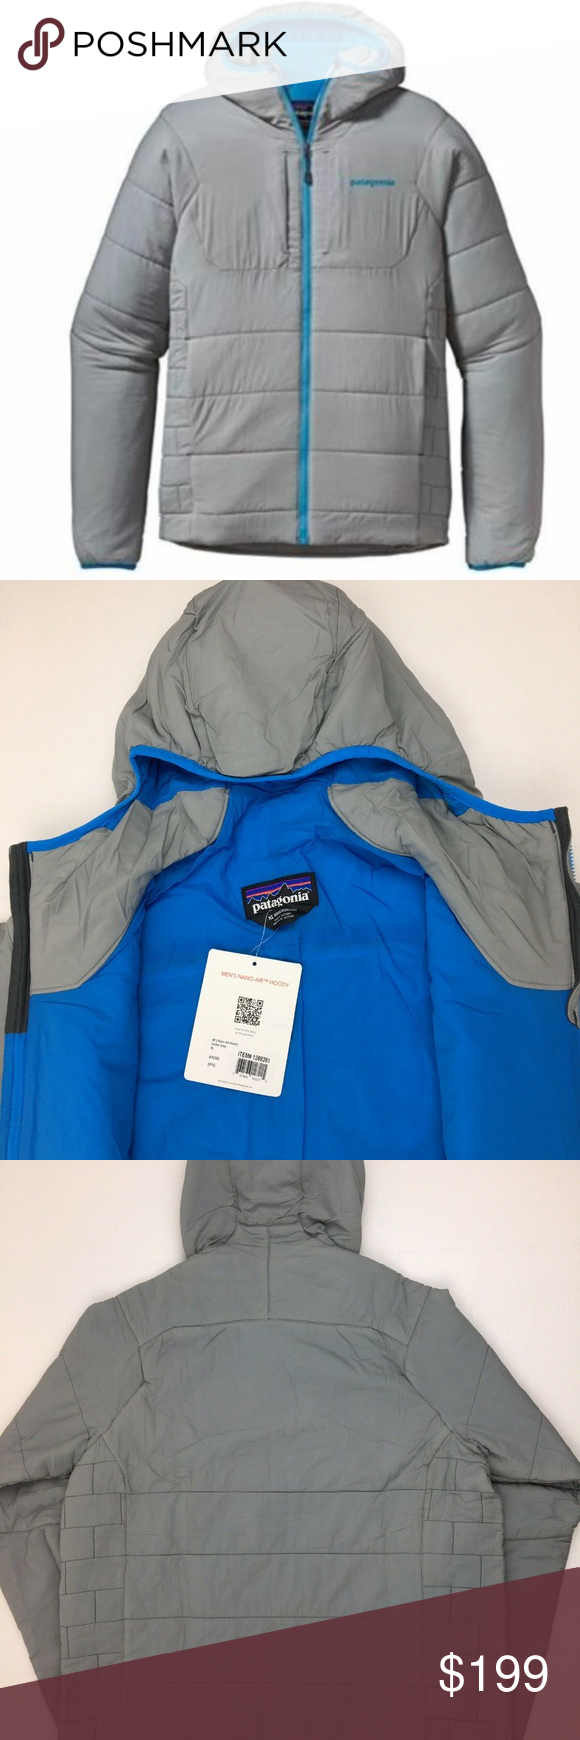 Men's Patagonia NanoAir Hoody Full Zip Jacket Zip